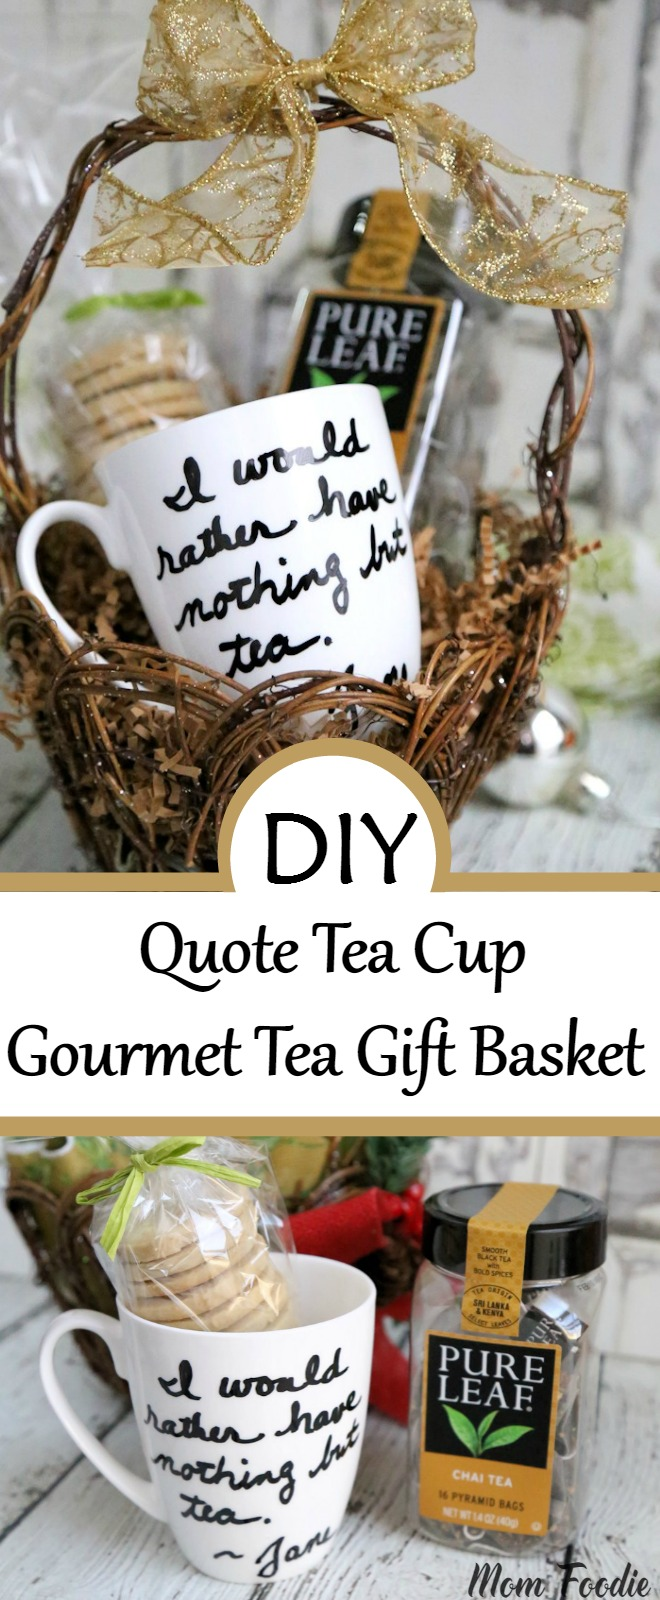 Make a Gourmet Tea Gift Basket w/ DIY Quote Tea Cup & Cardamom Spice Cookies